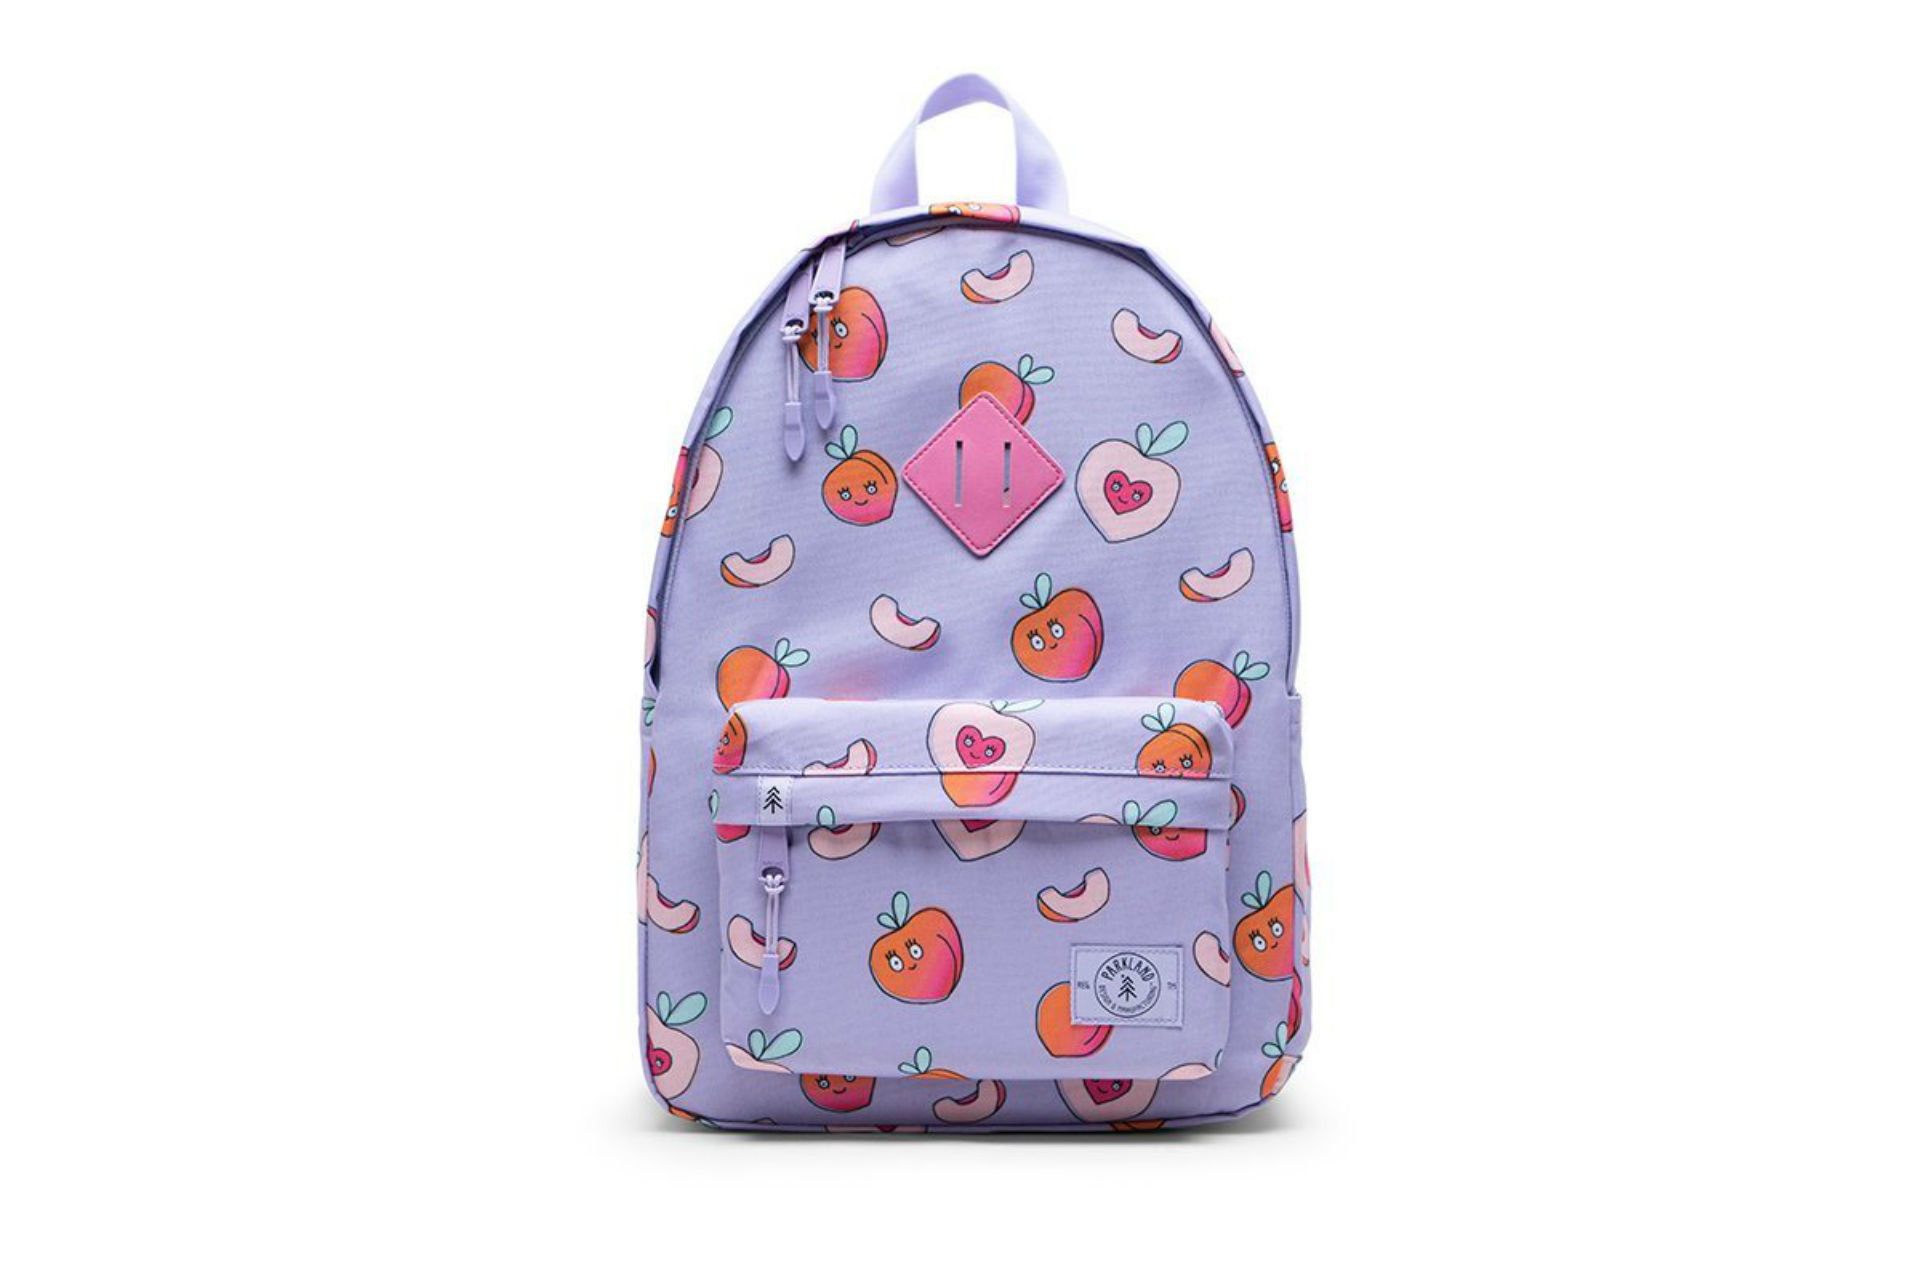 pink backpack with peach illustrations all over